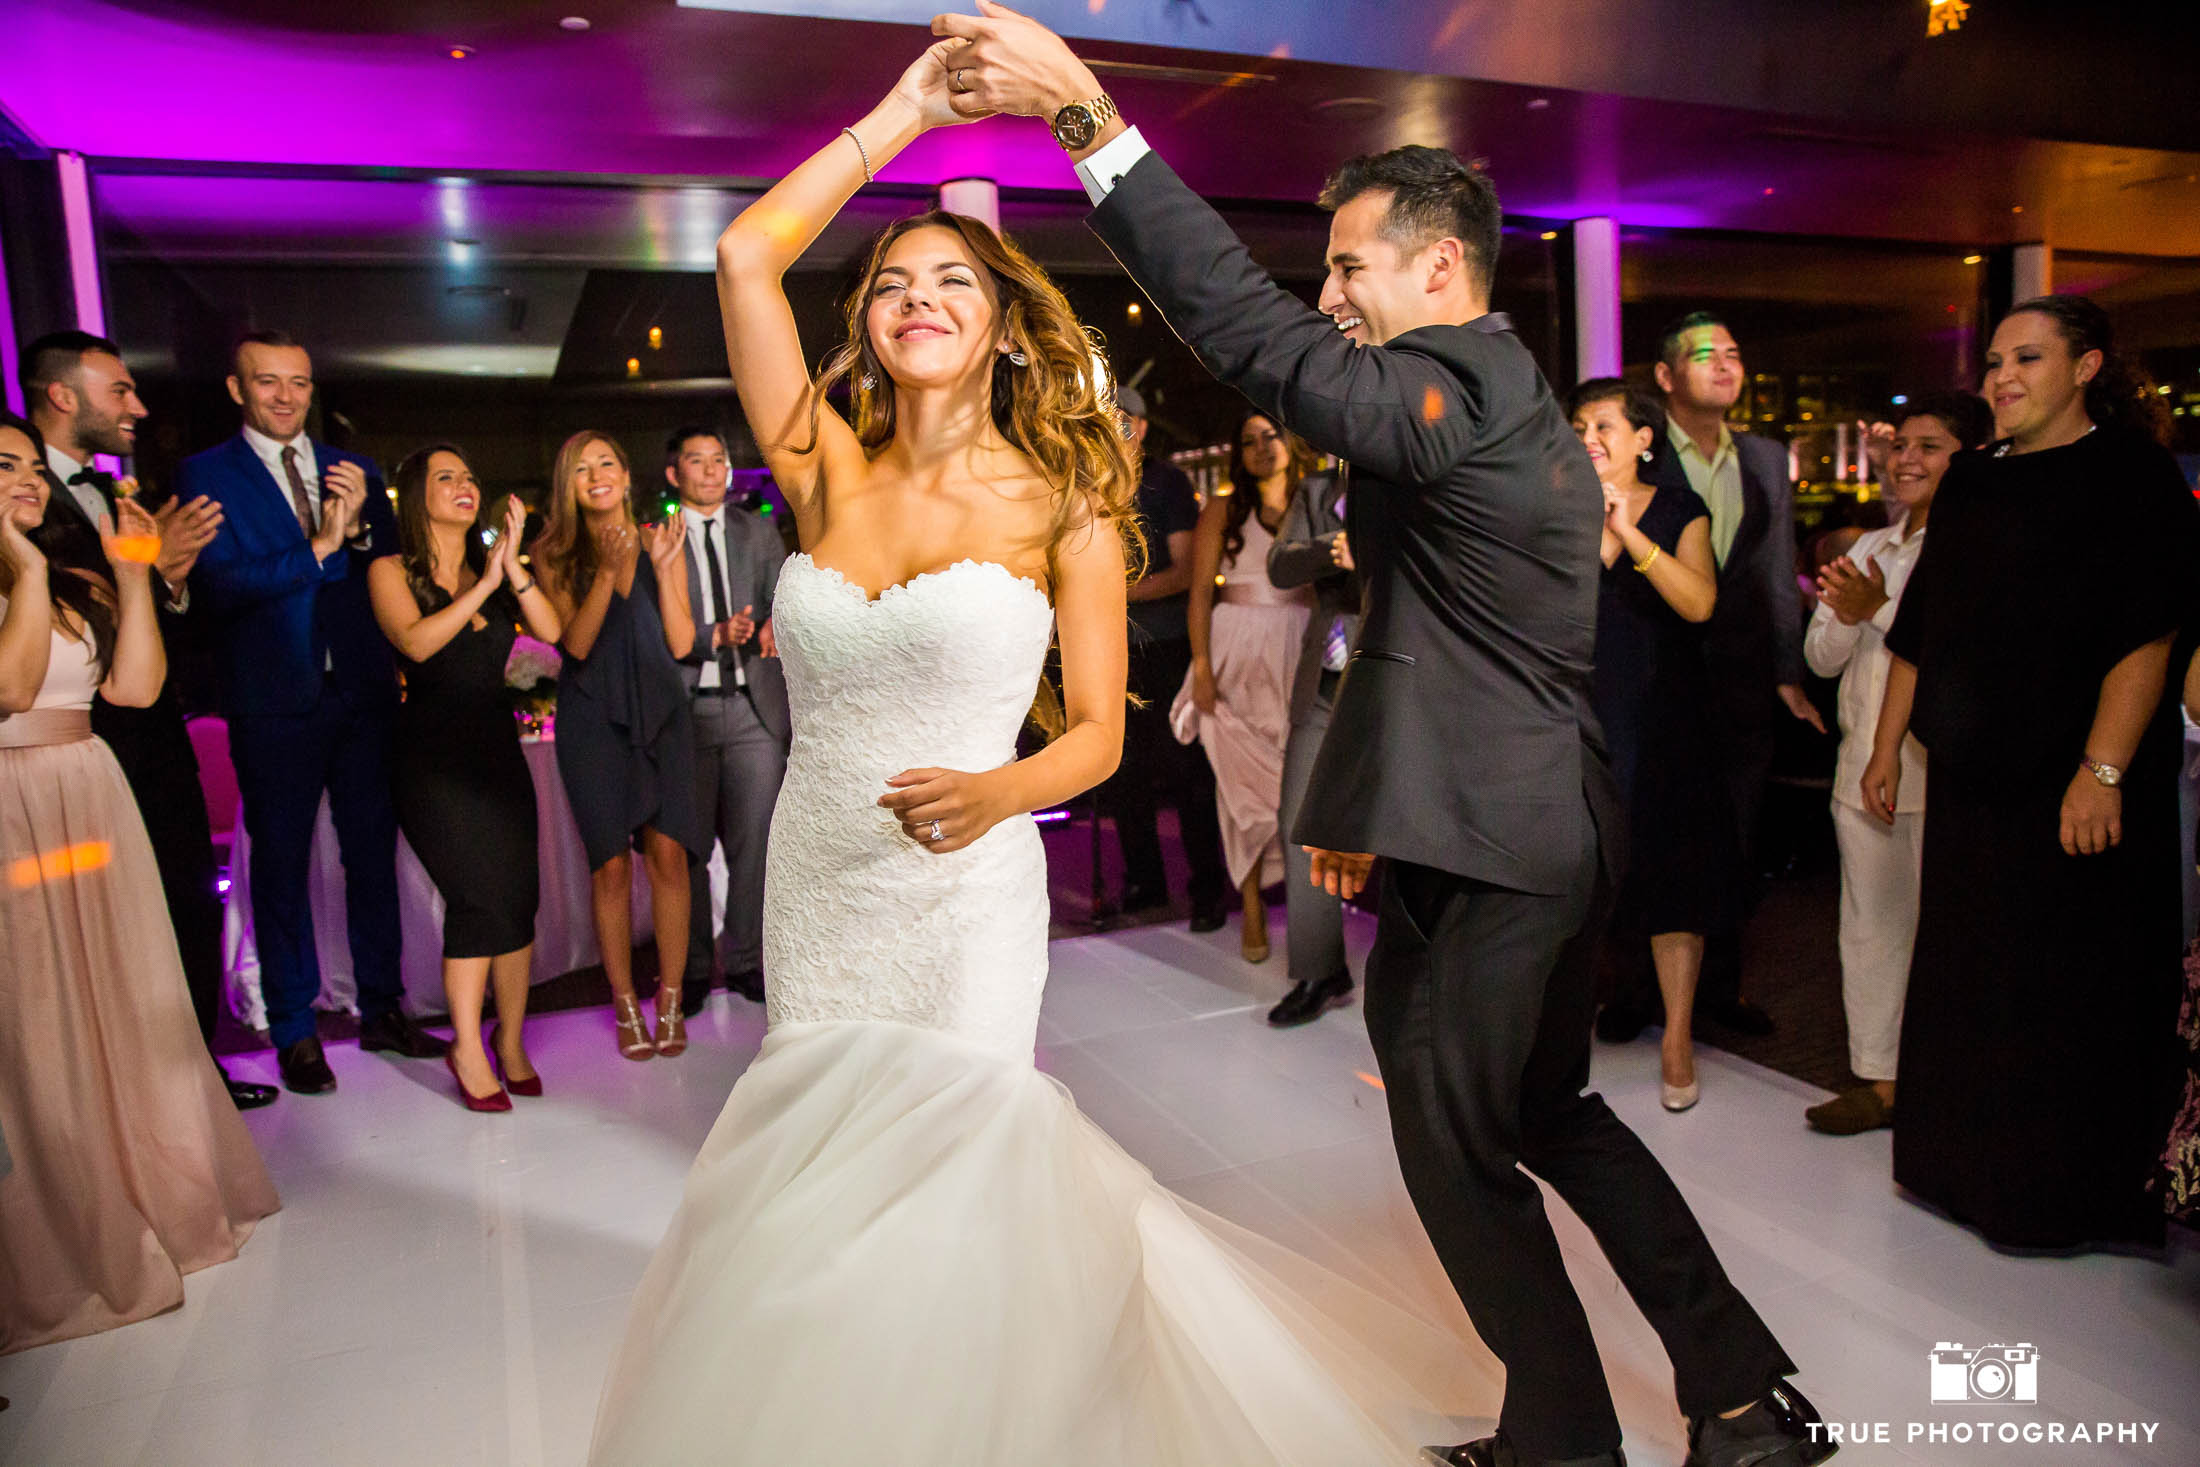 Guests cheer on as Bride and Groom celebrate their First Dance